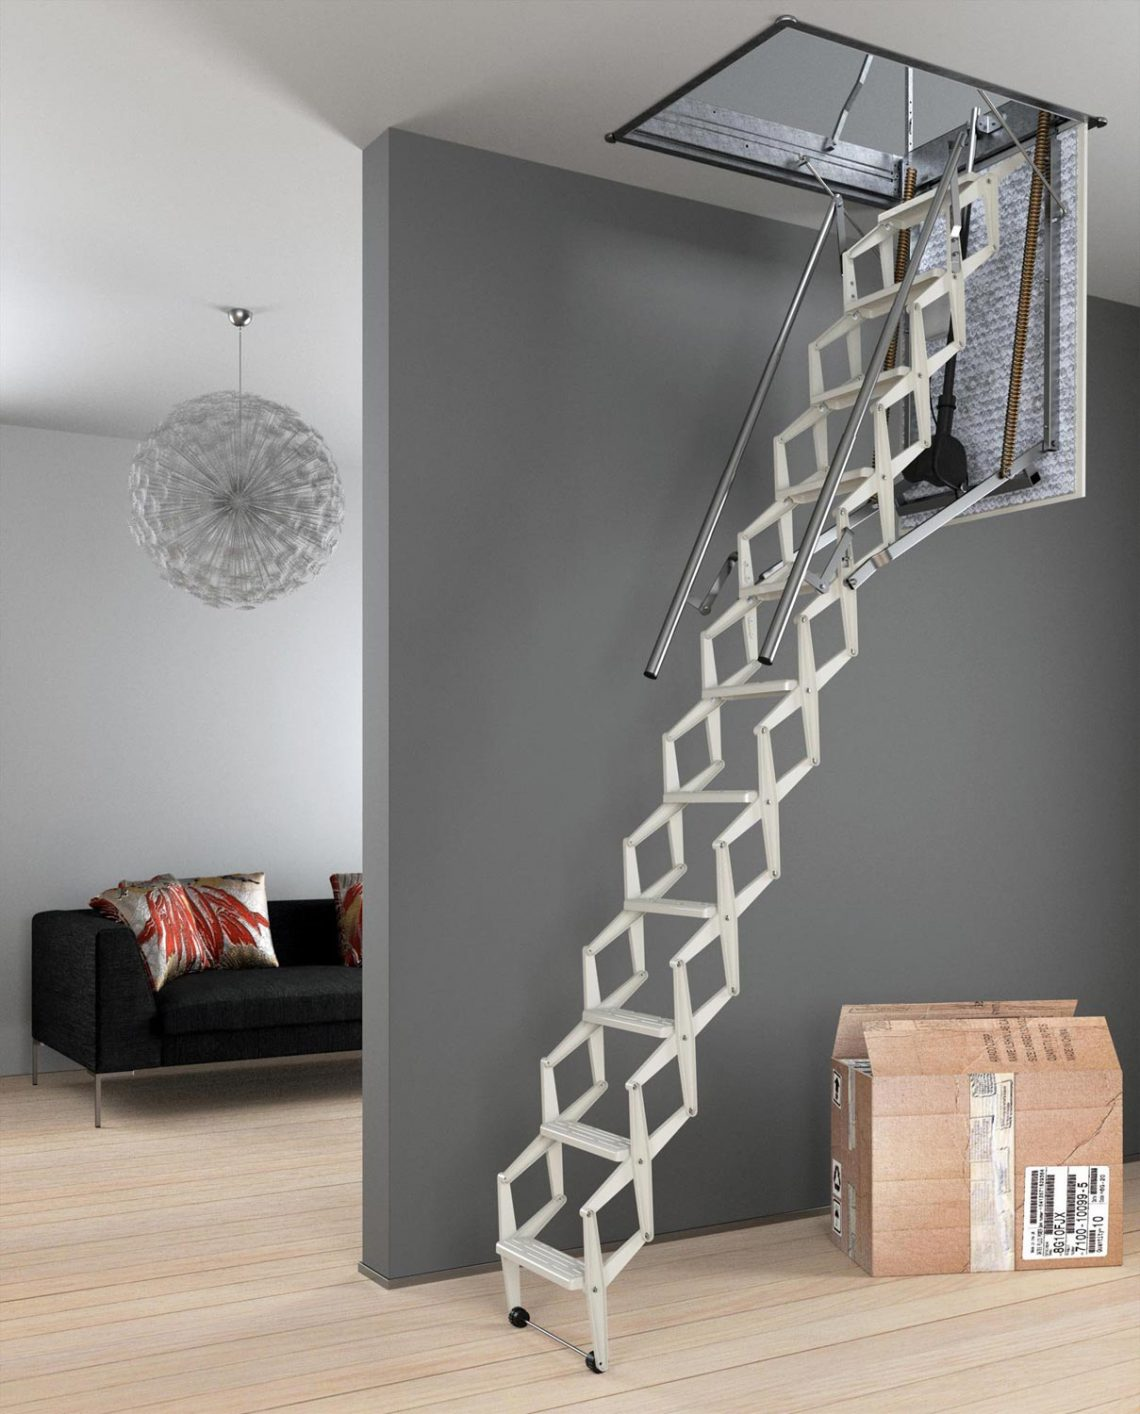 comment installer un escalier escamotable. Black Bedroom Furniture Sets. Home Design Ideas